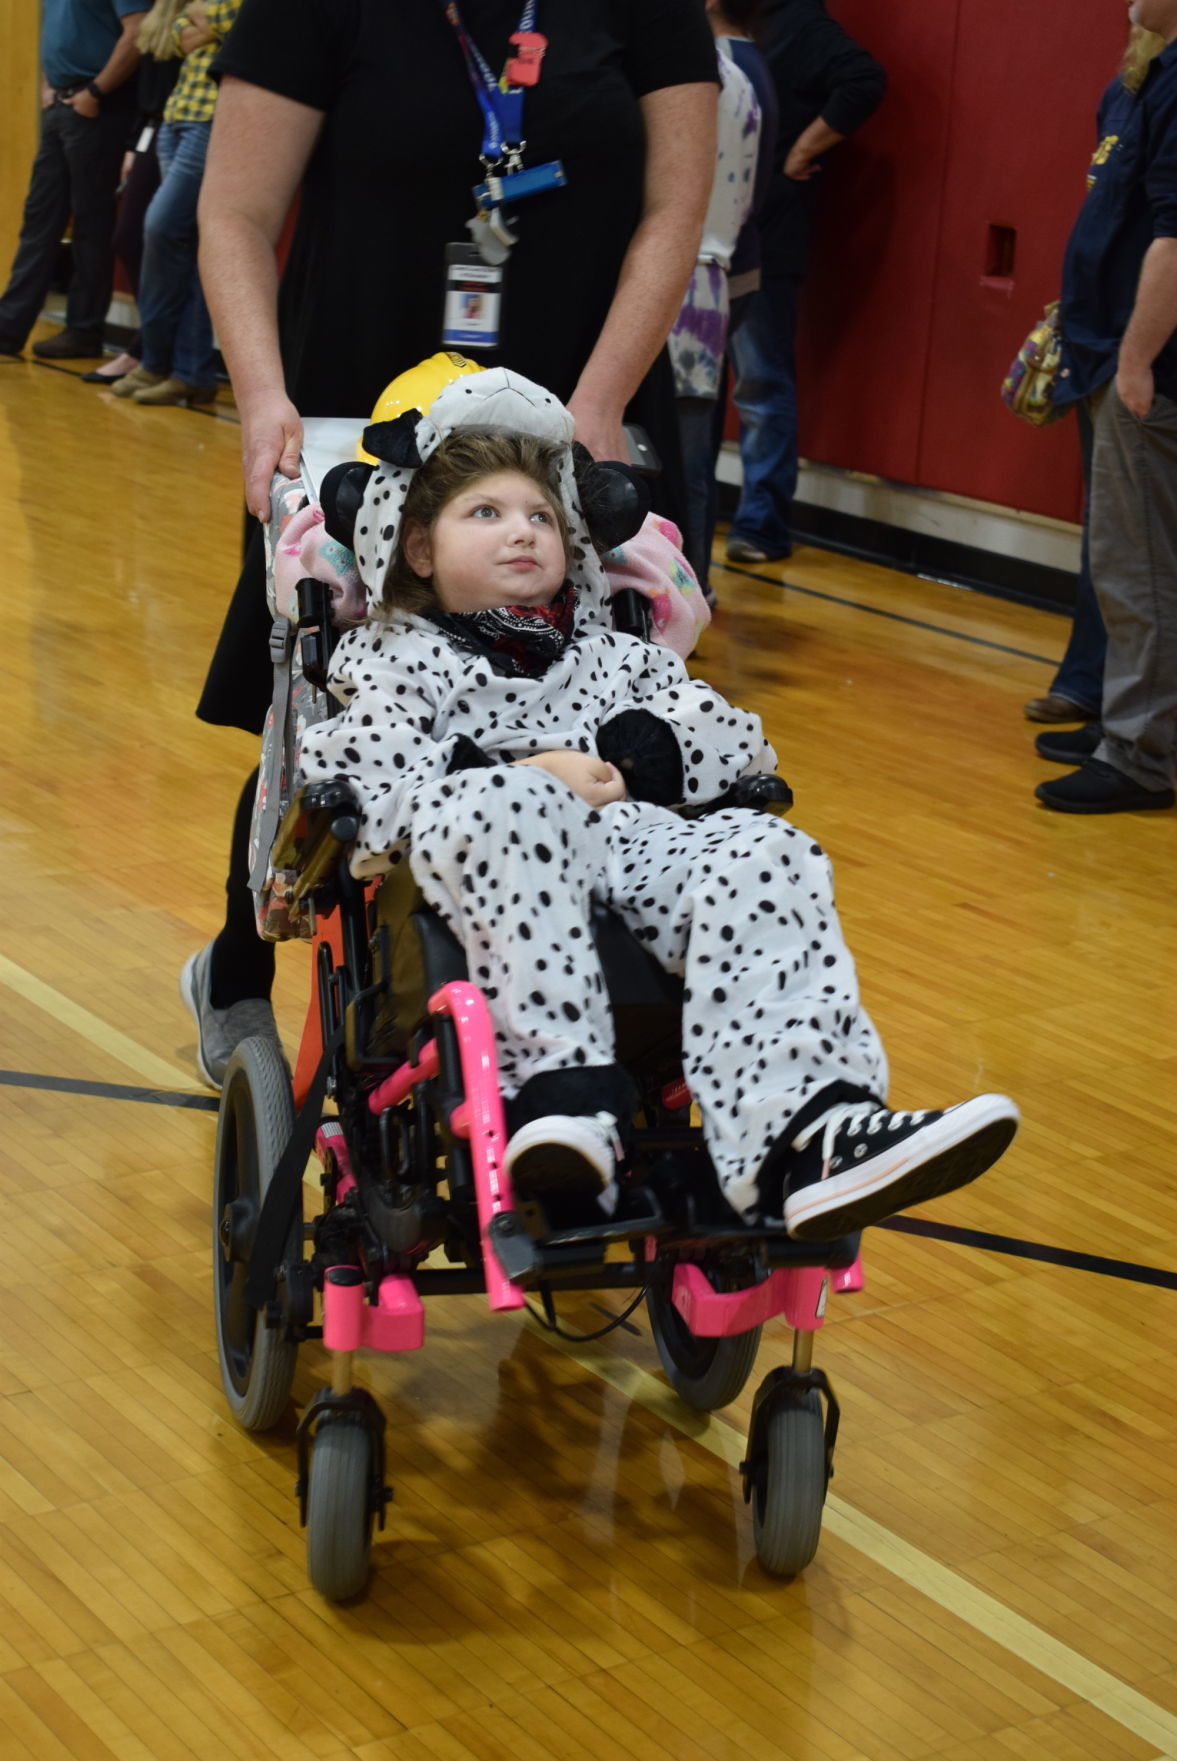 Lewis County children celebrate Halloween in style